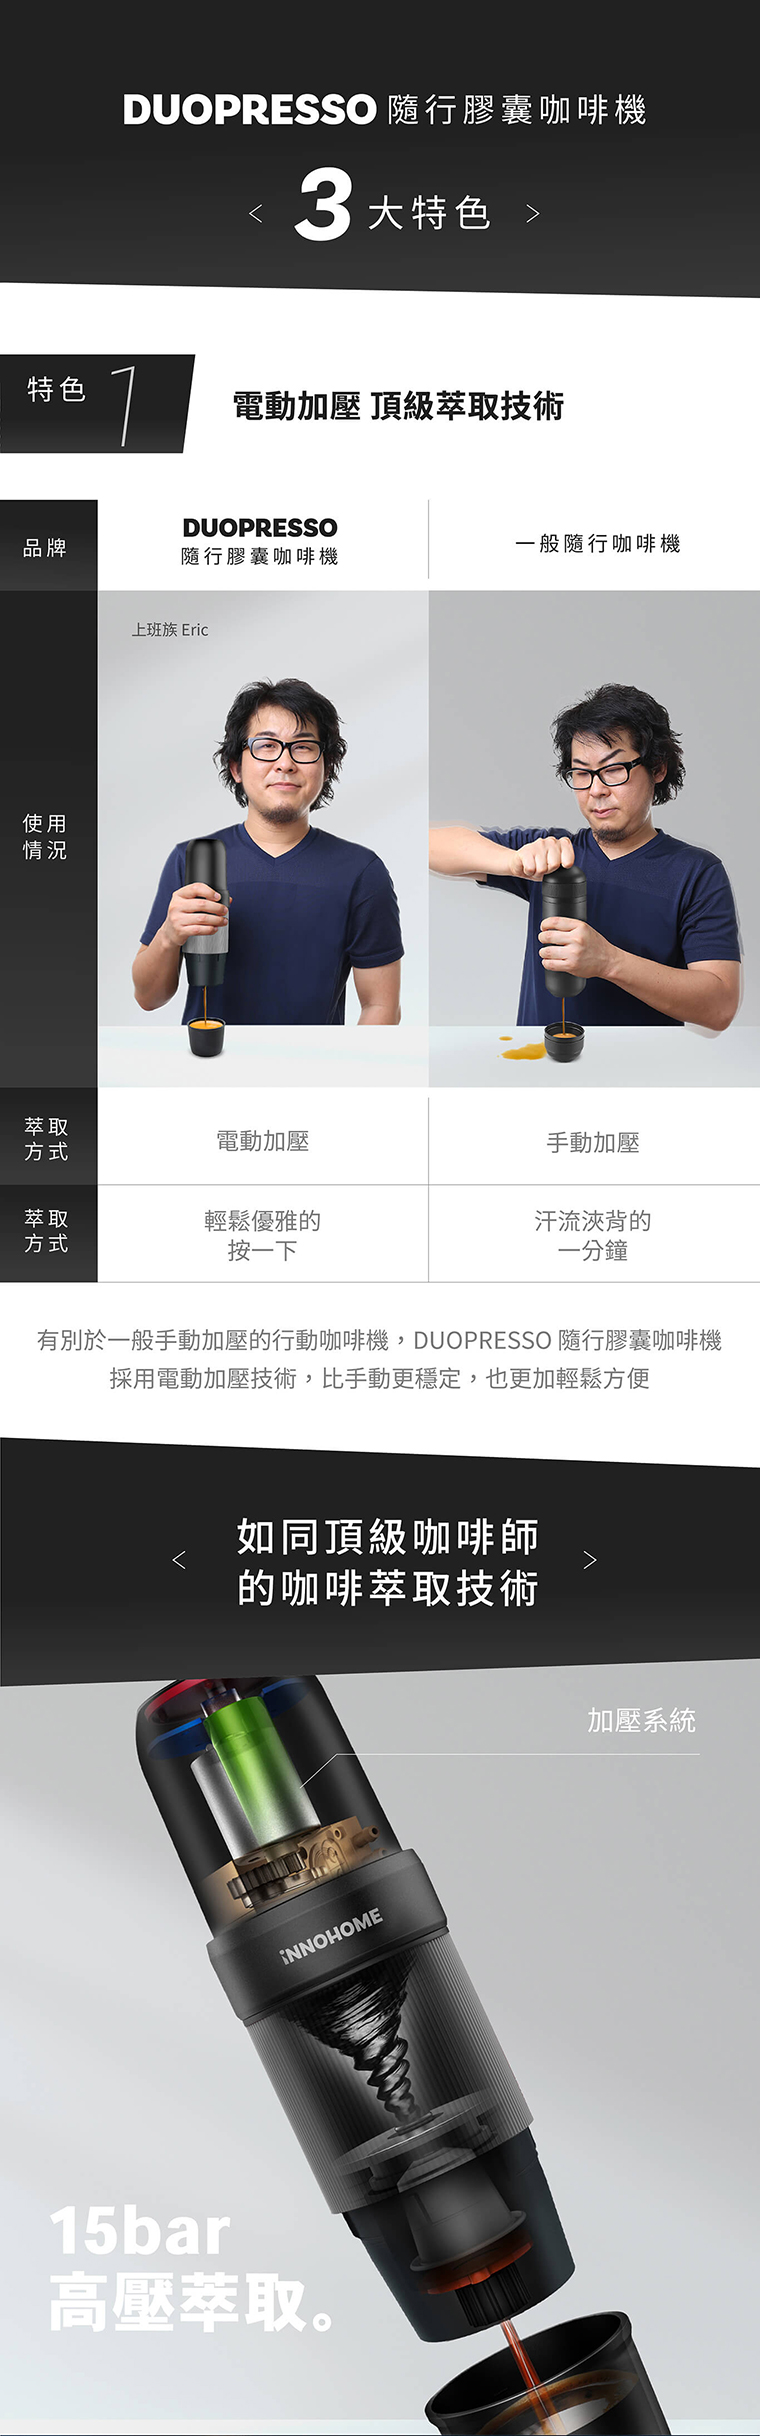 iNNOHOME Duopresso 隨行膠囊咖啡機 | Be Your Beauty